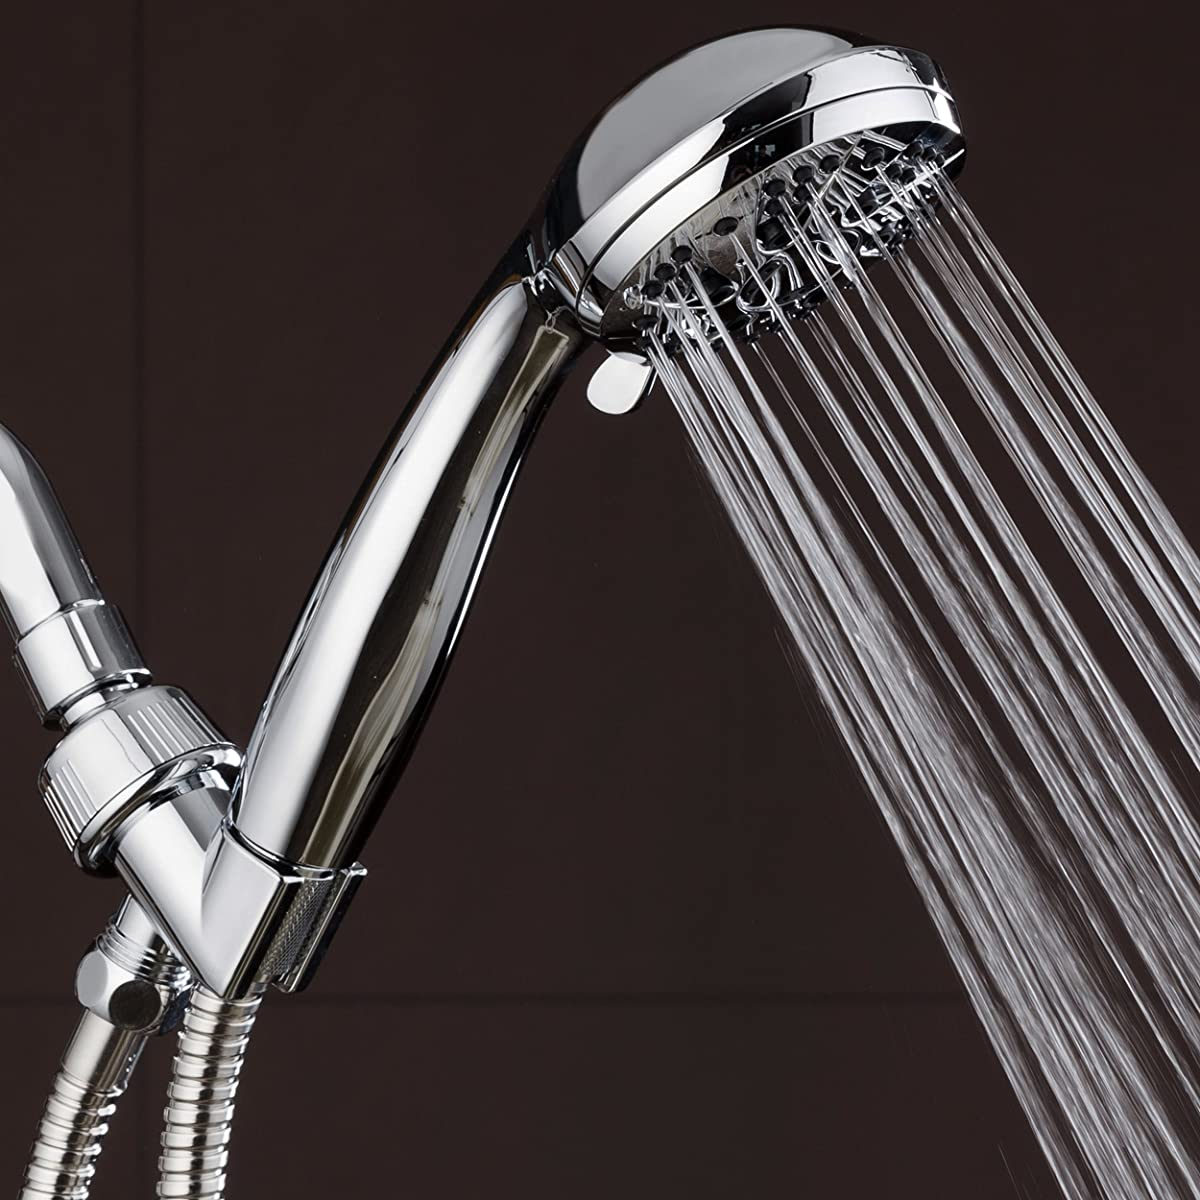 "AquaDance High Pressure 6-Setting 3.5"" Chrome Face Handheld Shower with Hose for the Ultimate Shower Experience! Officially Independently Tested to Meet Strict US Quality & Performance Standards"